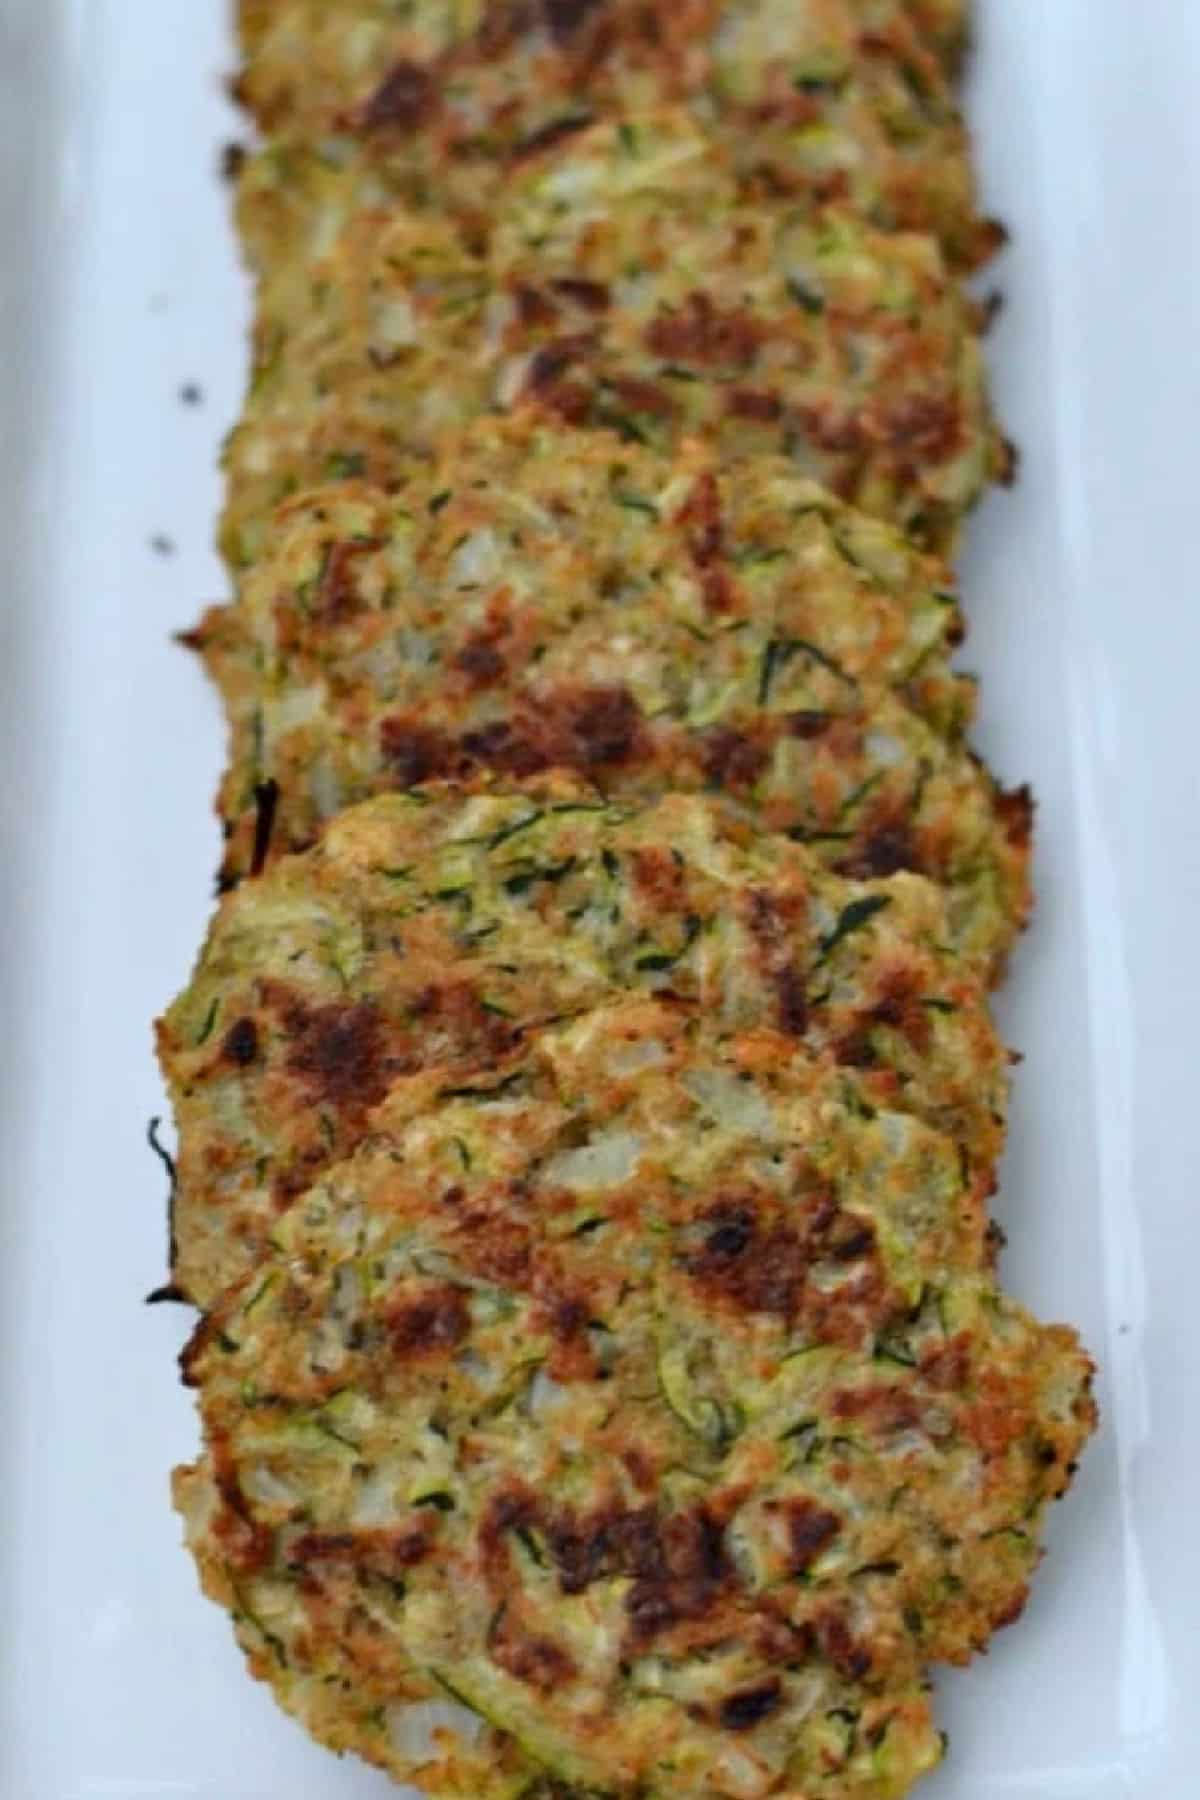 Baked Zucchini Cakes are a much healthier option to fried with the same crispiness. So quick to make and loaded with flavor, they are a great new way to serve this favorite veggie.